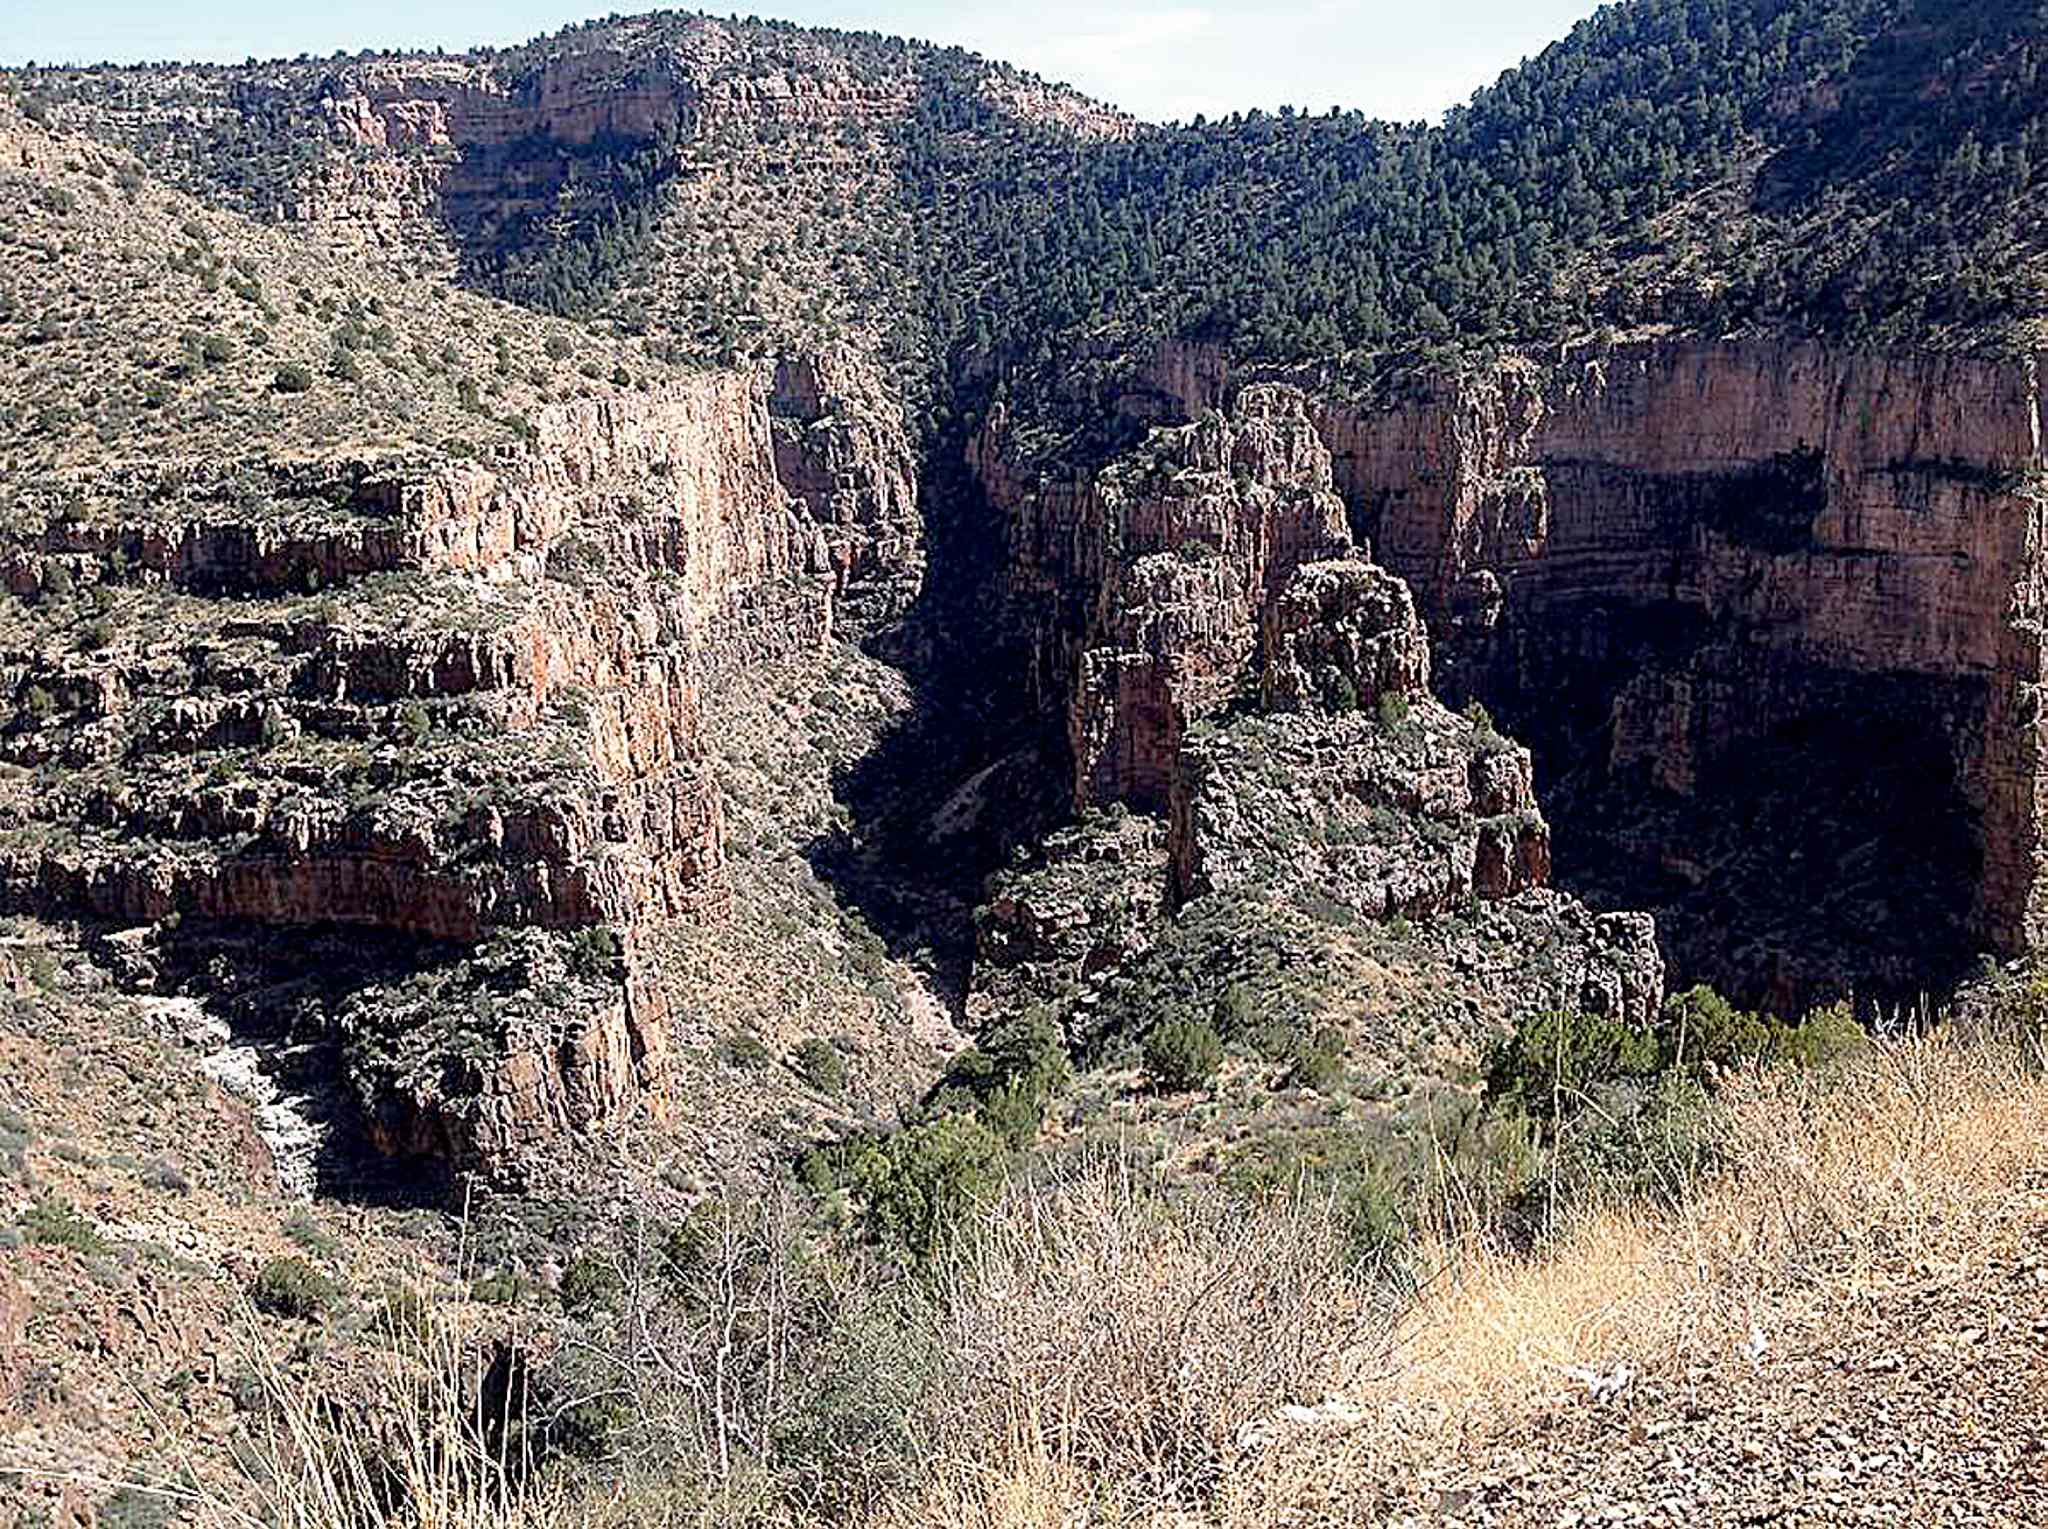 The majestic scenery of the Salt River Canyon was especially impressive for a Prairie girl.